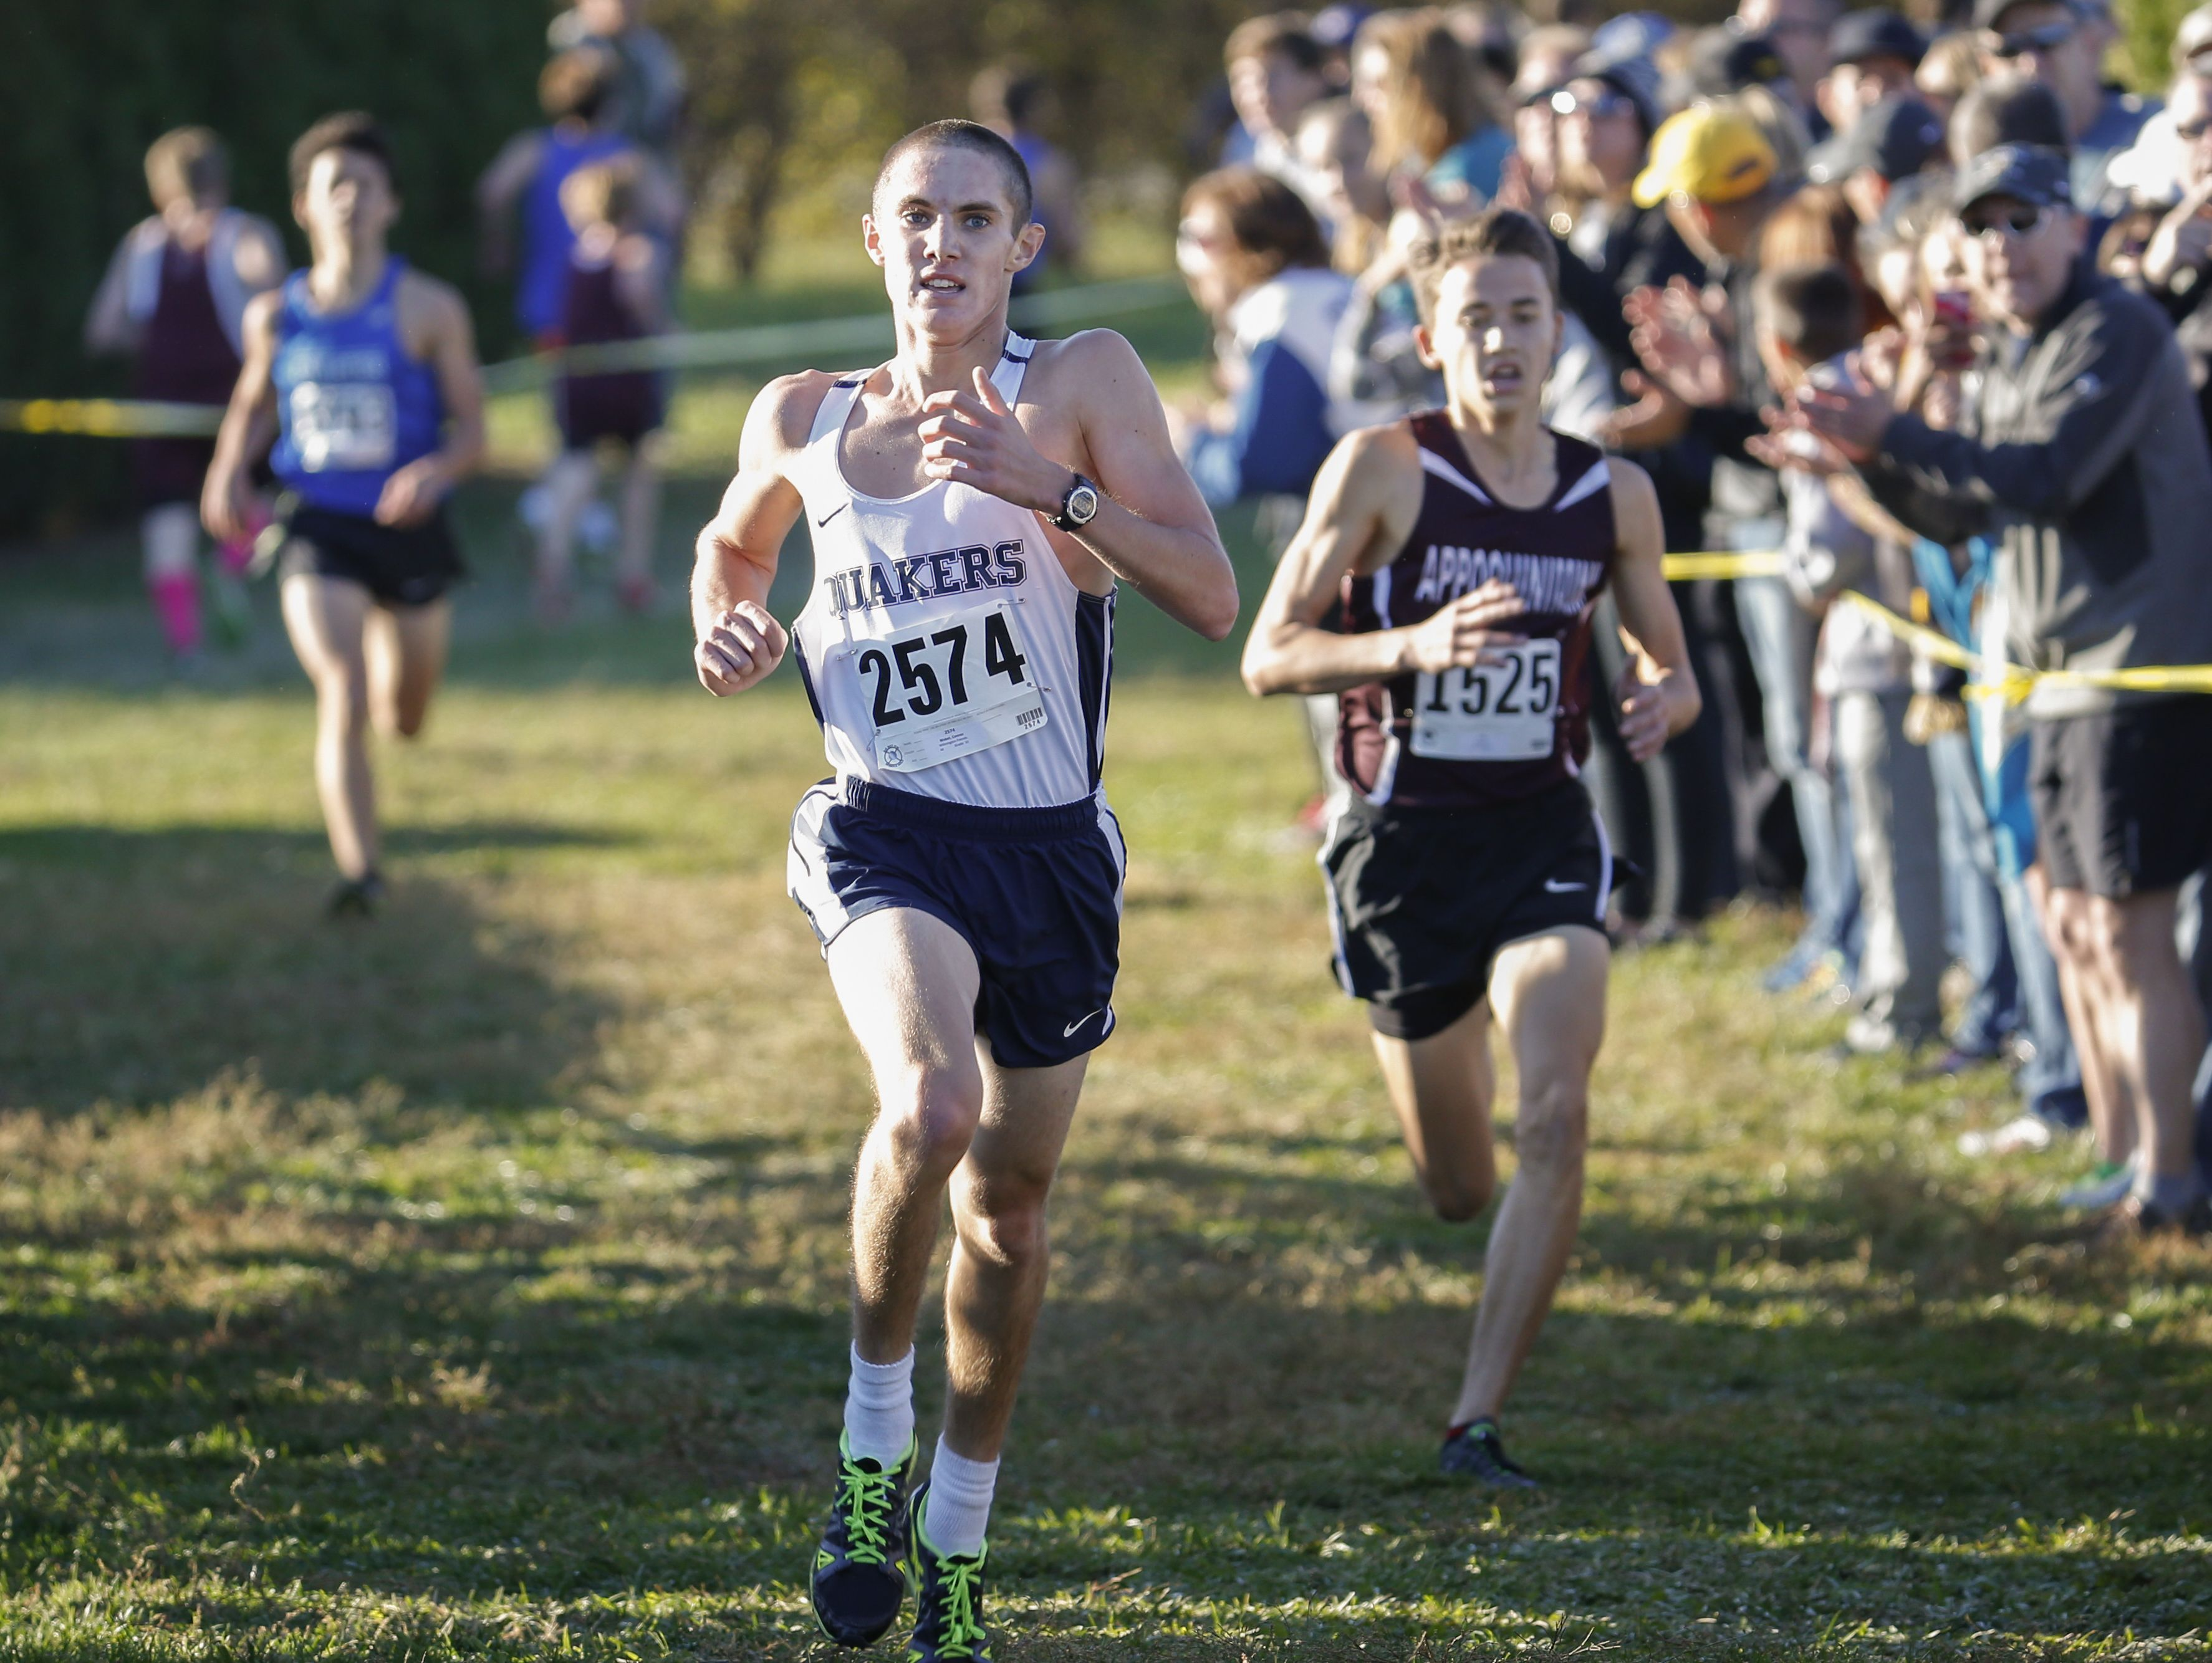 Winner Connor Nisbet of Wilmington Friends leads second place finisher Vail Freed of Appoquinimink in the final yards at the finish line of the New Castle County cross country championships Saturday at Winterthur.